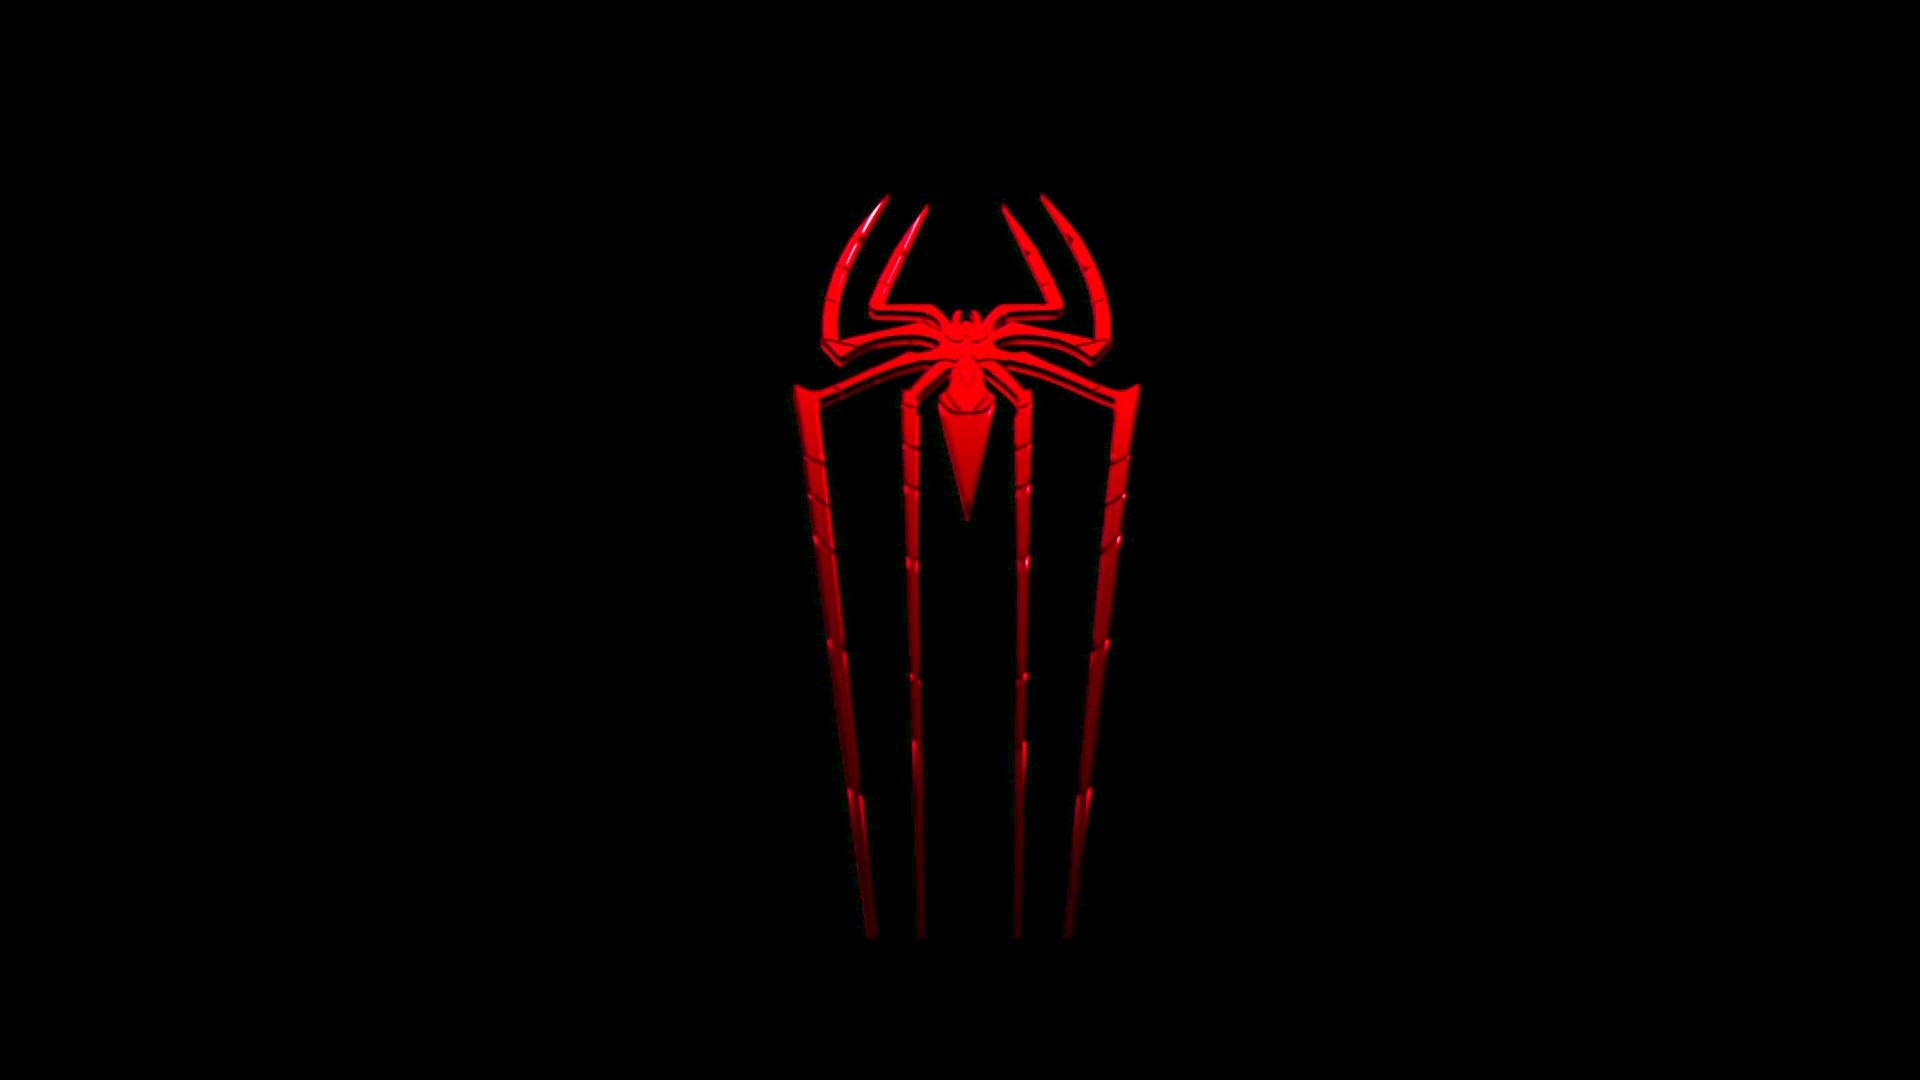 wallpaper spiderman wallpapers logo 1920x1080 1920x1080